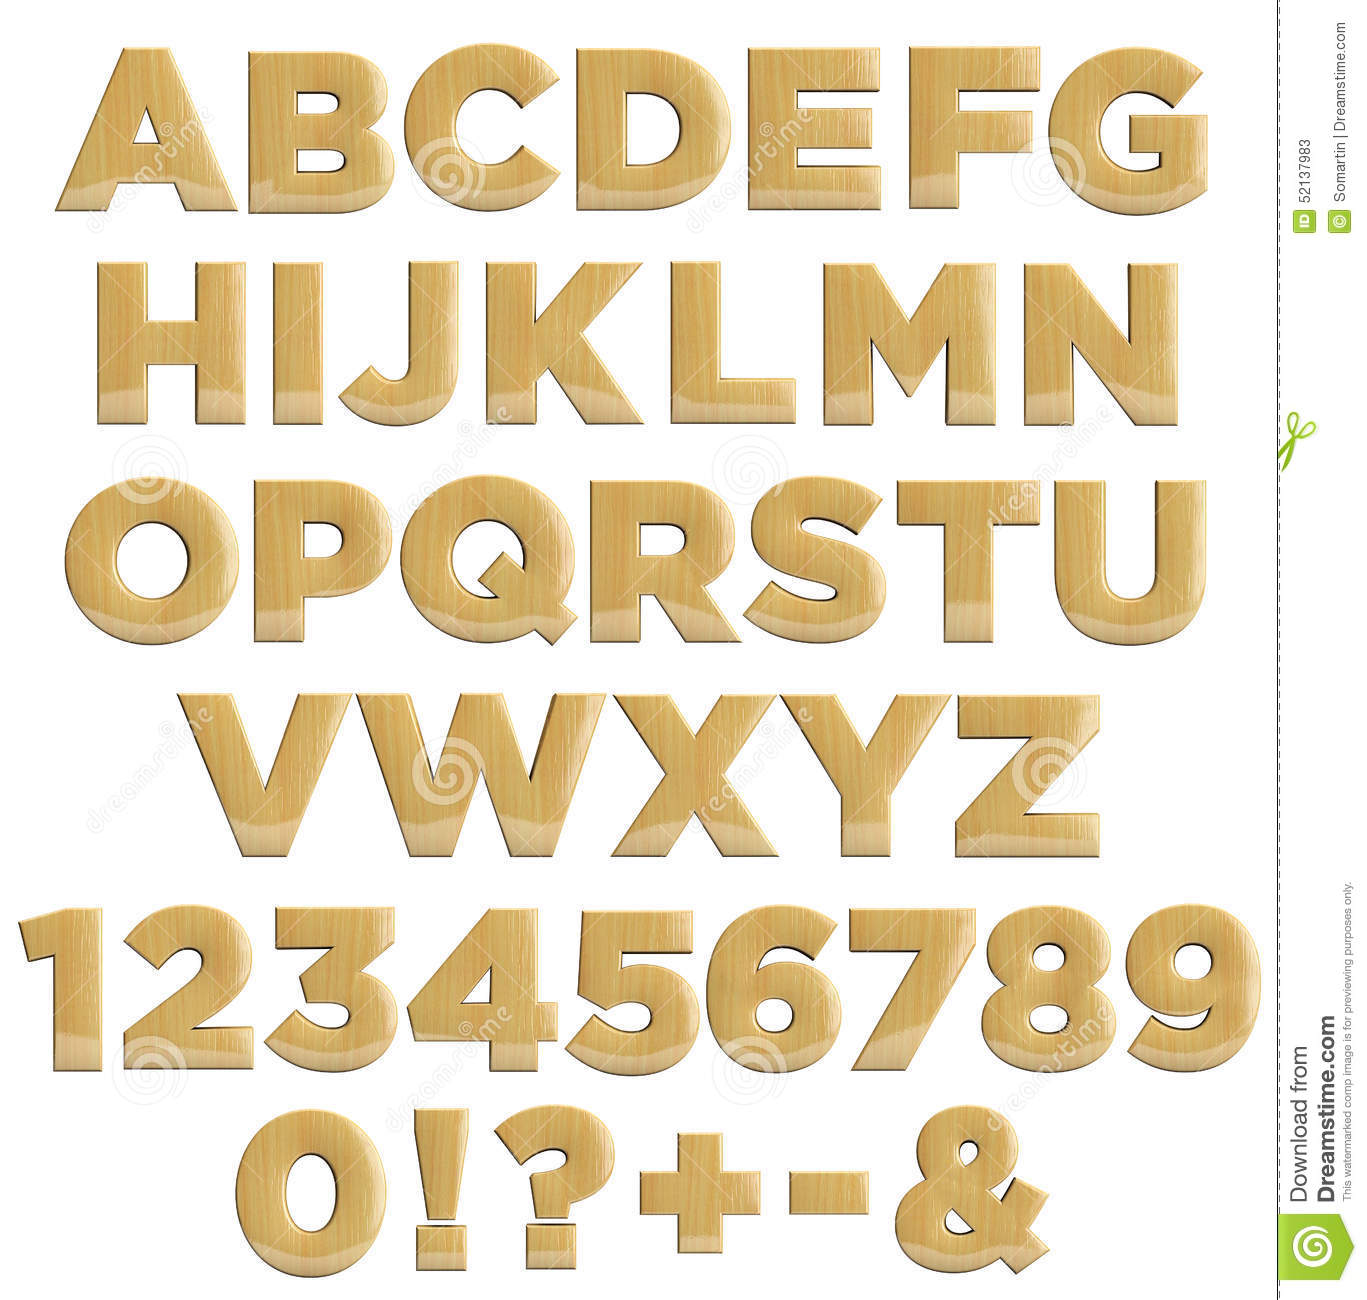 Wooden Letters And Numbers - Wood Alphabet Stock Illustration - Image: 52137983